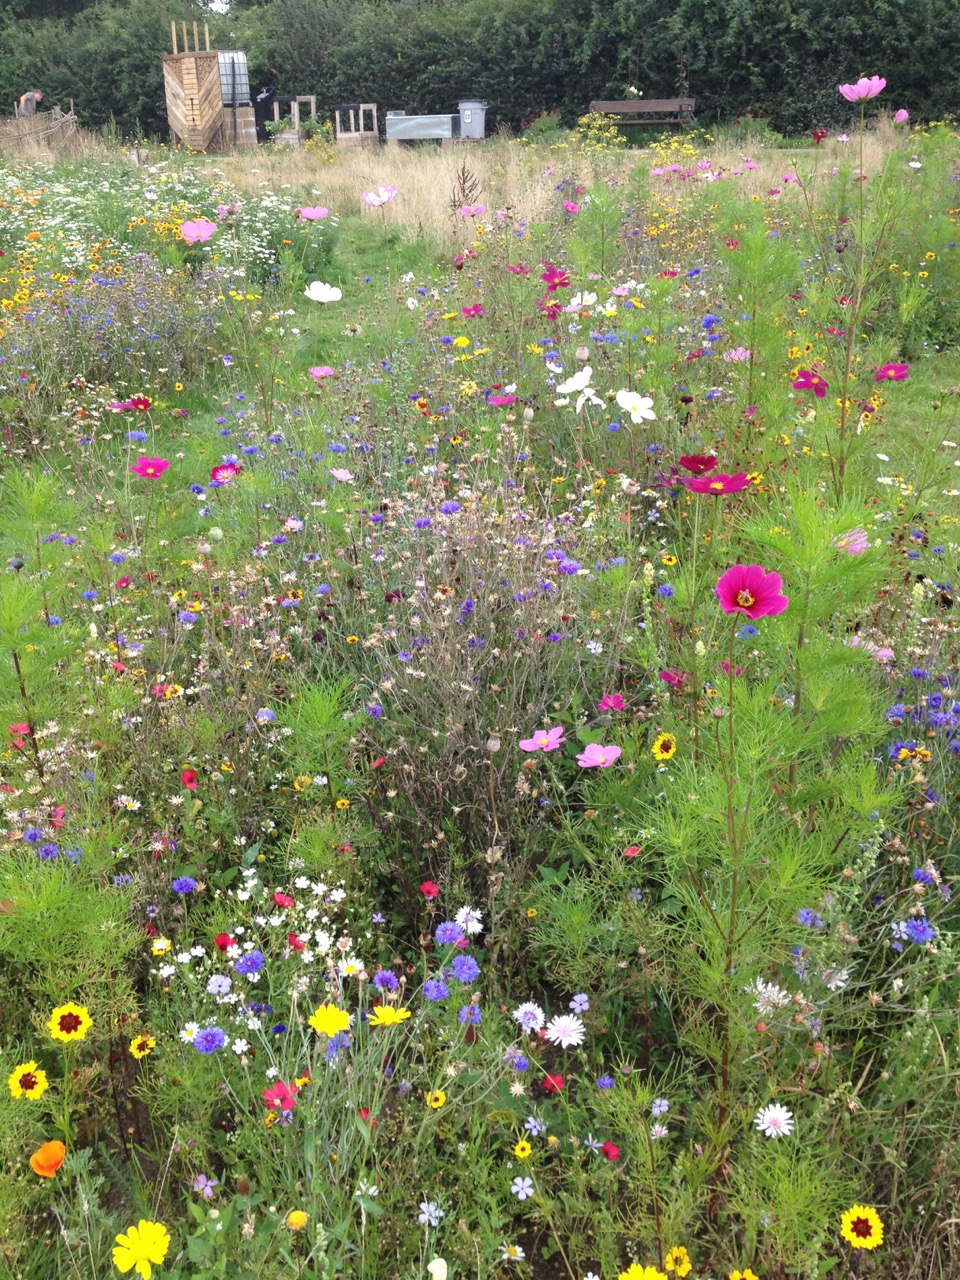 Some of the Patriotic annual Pictorial Meadow bed - with the new bug hotel (disguise for the water tower) in the background - still in progress.